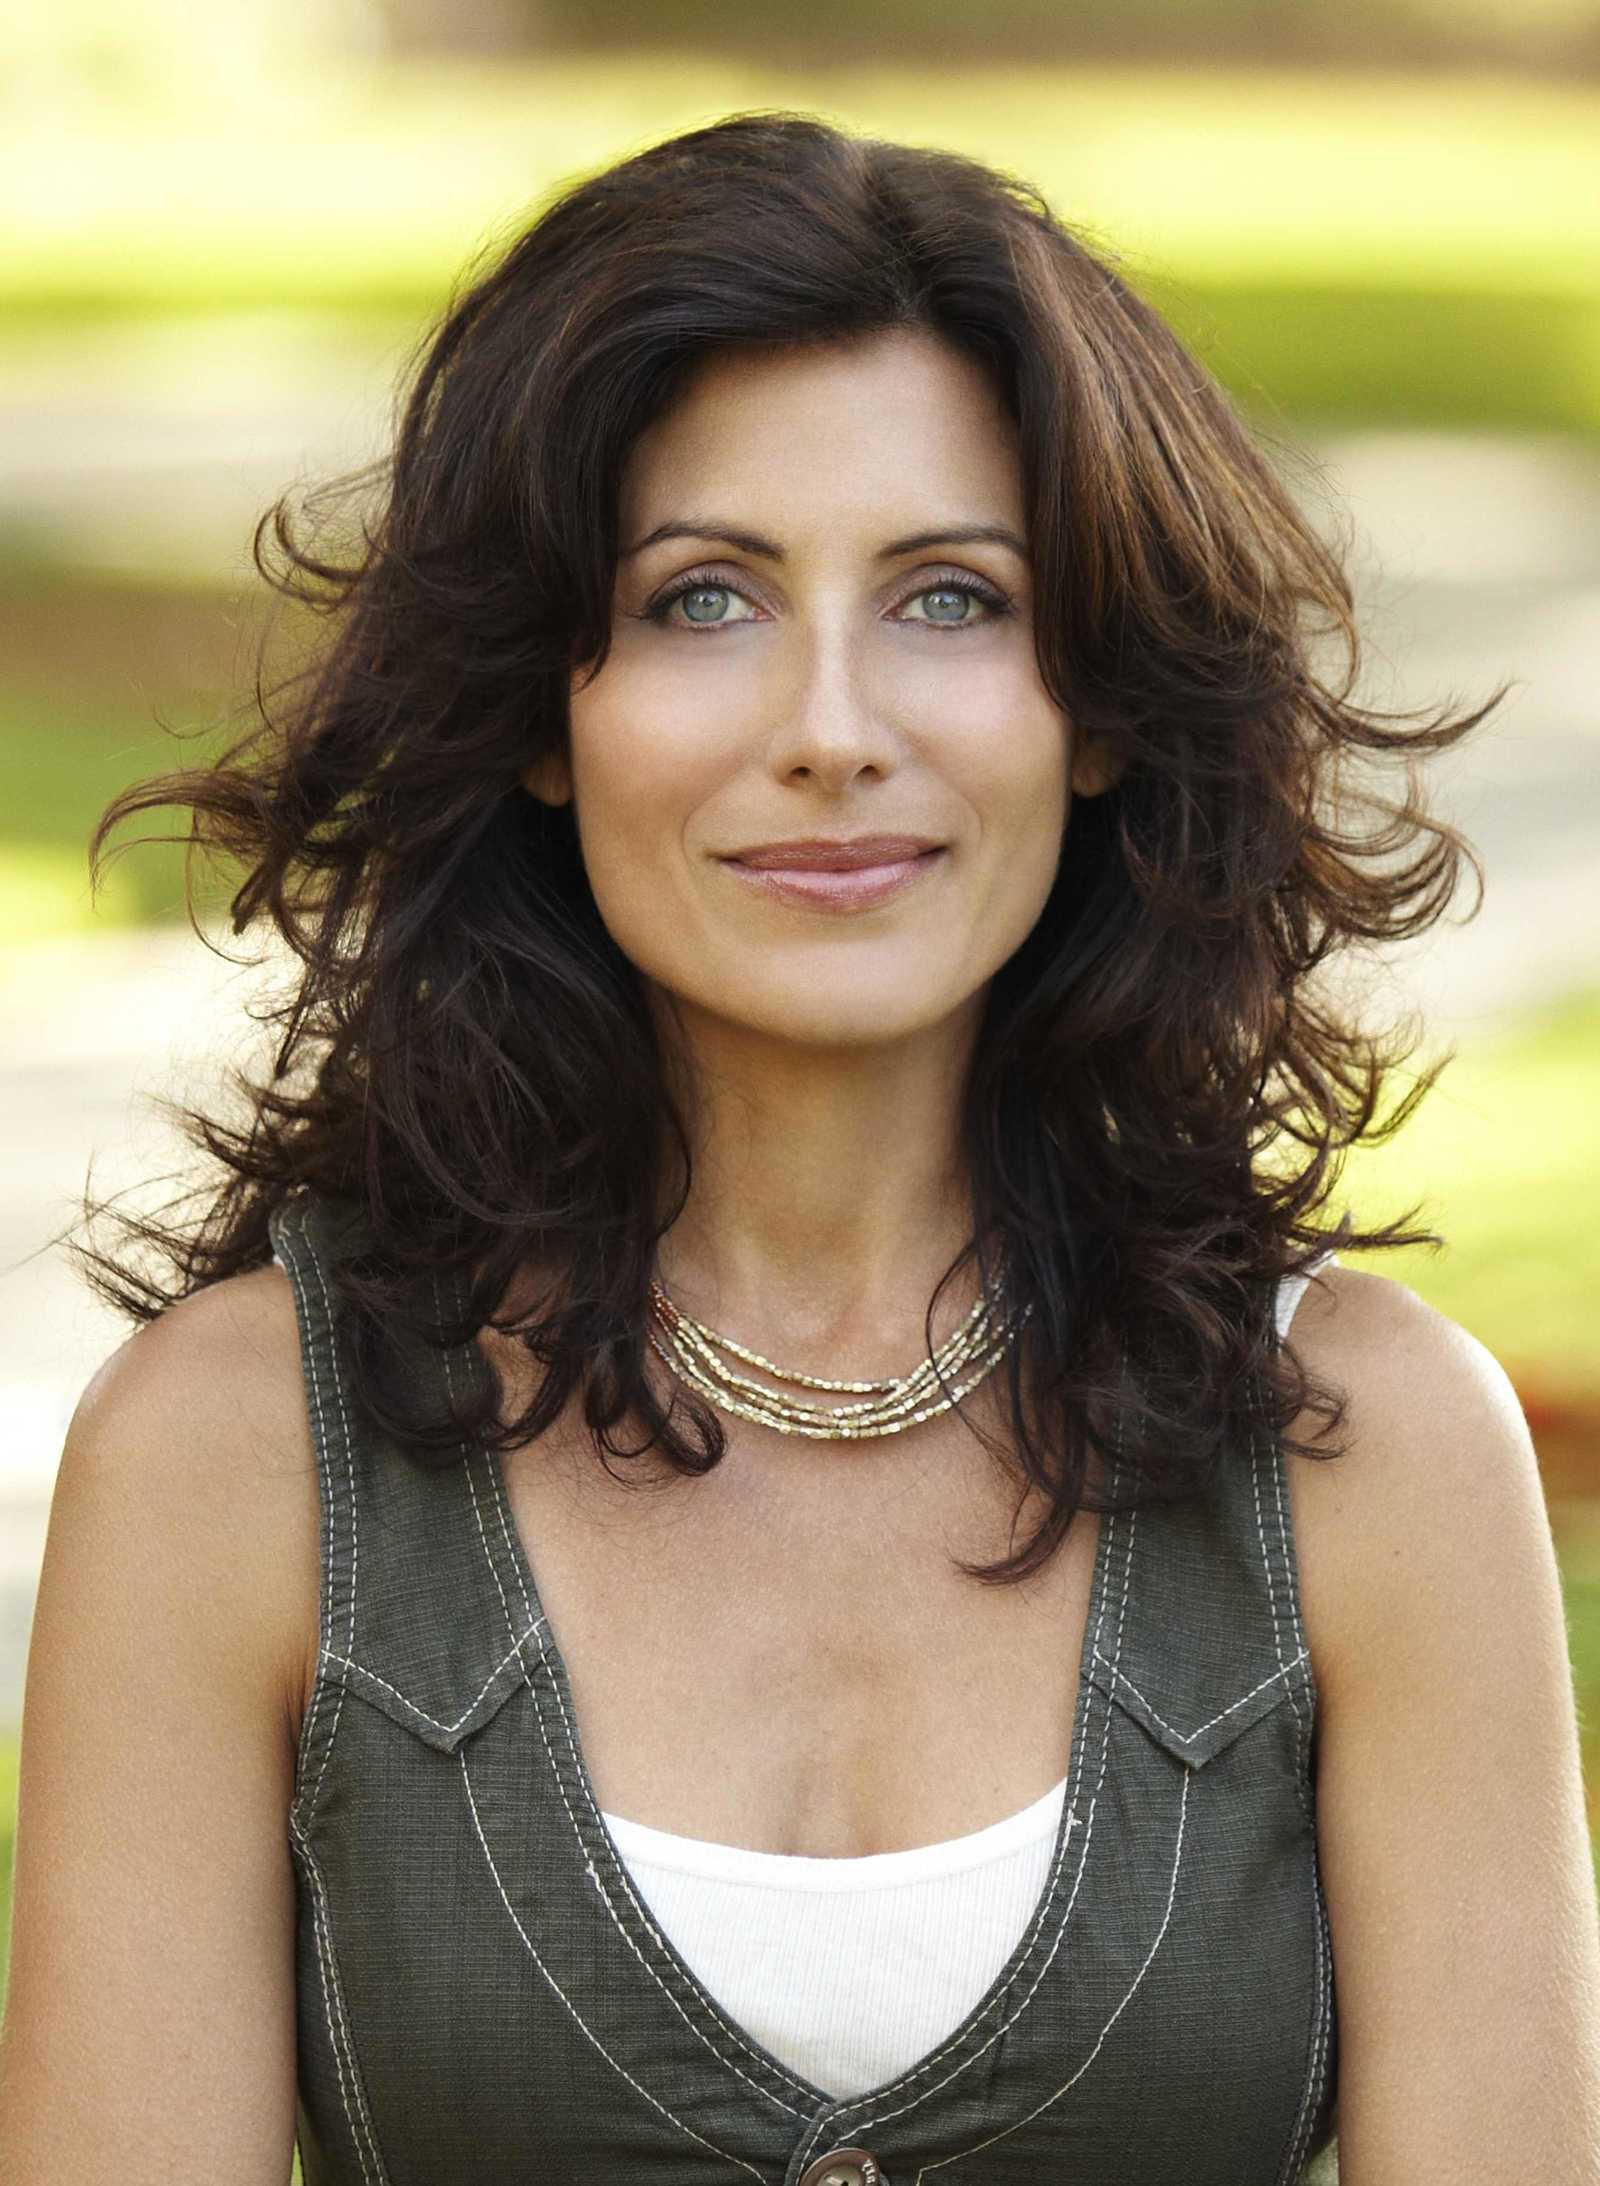 Cock flasher lisa edelstein hot brown girl with